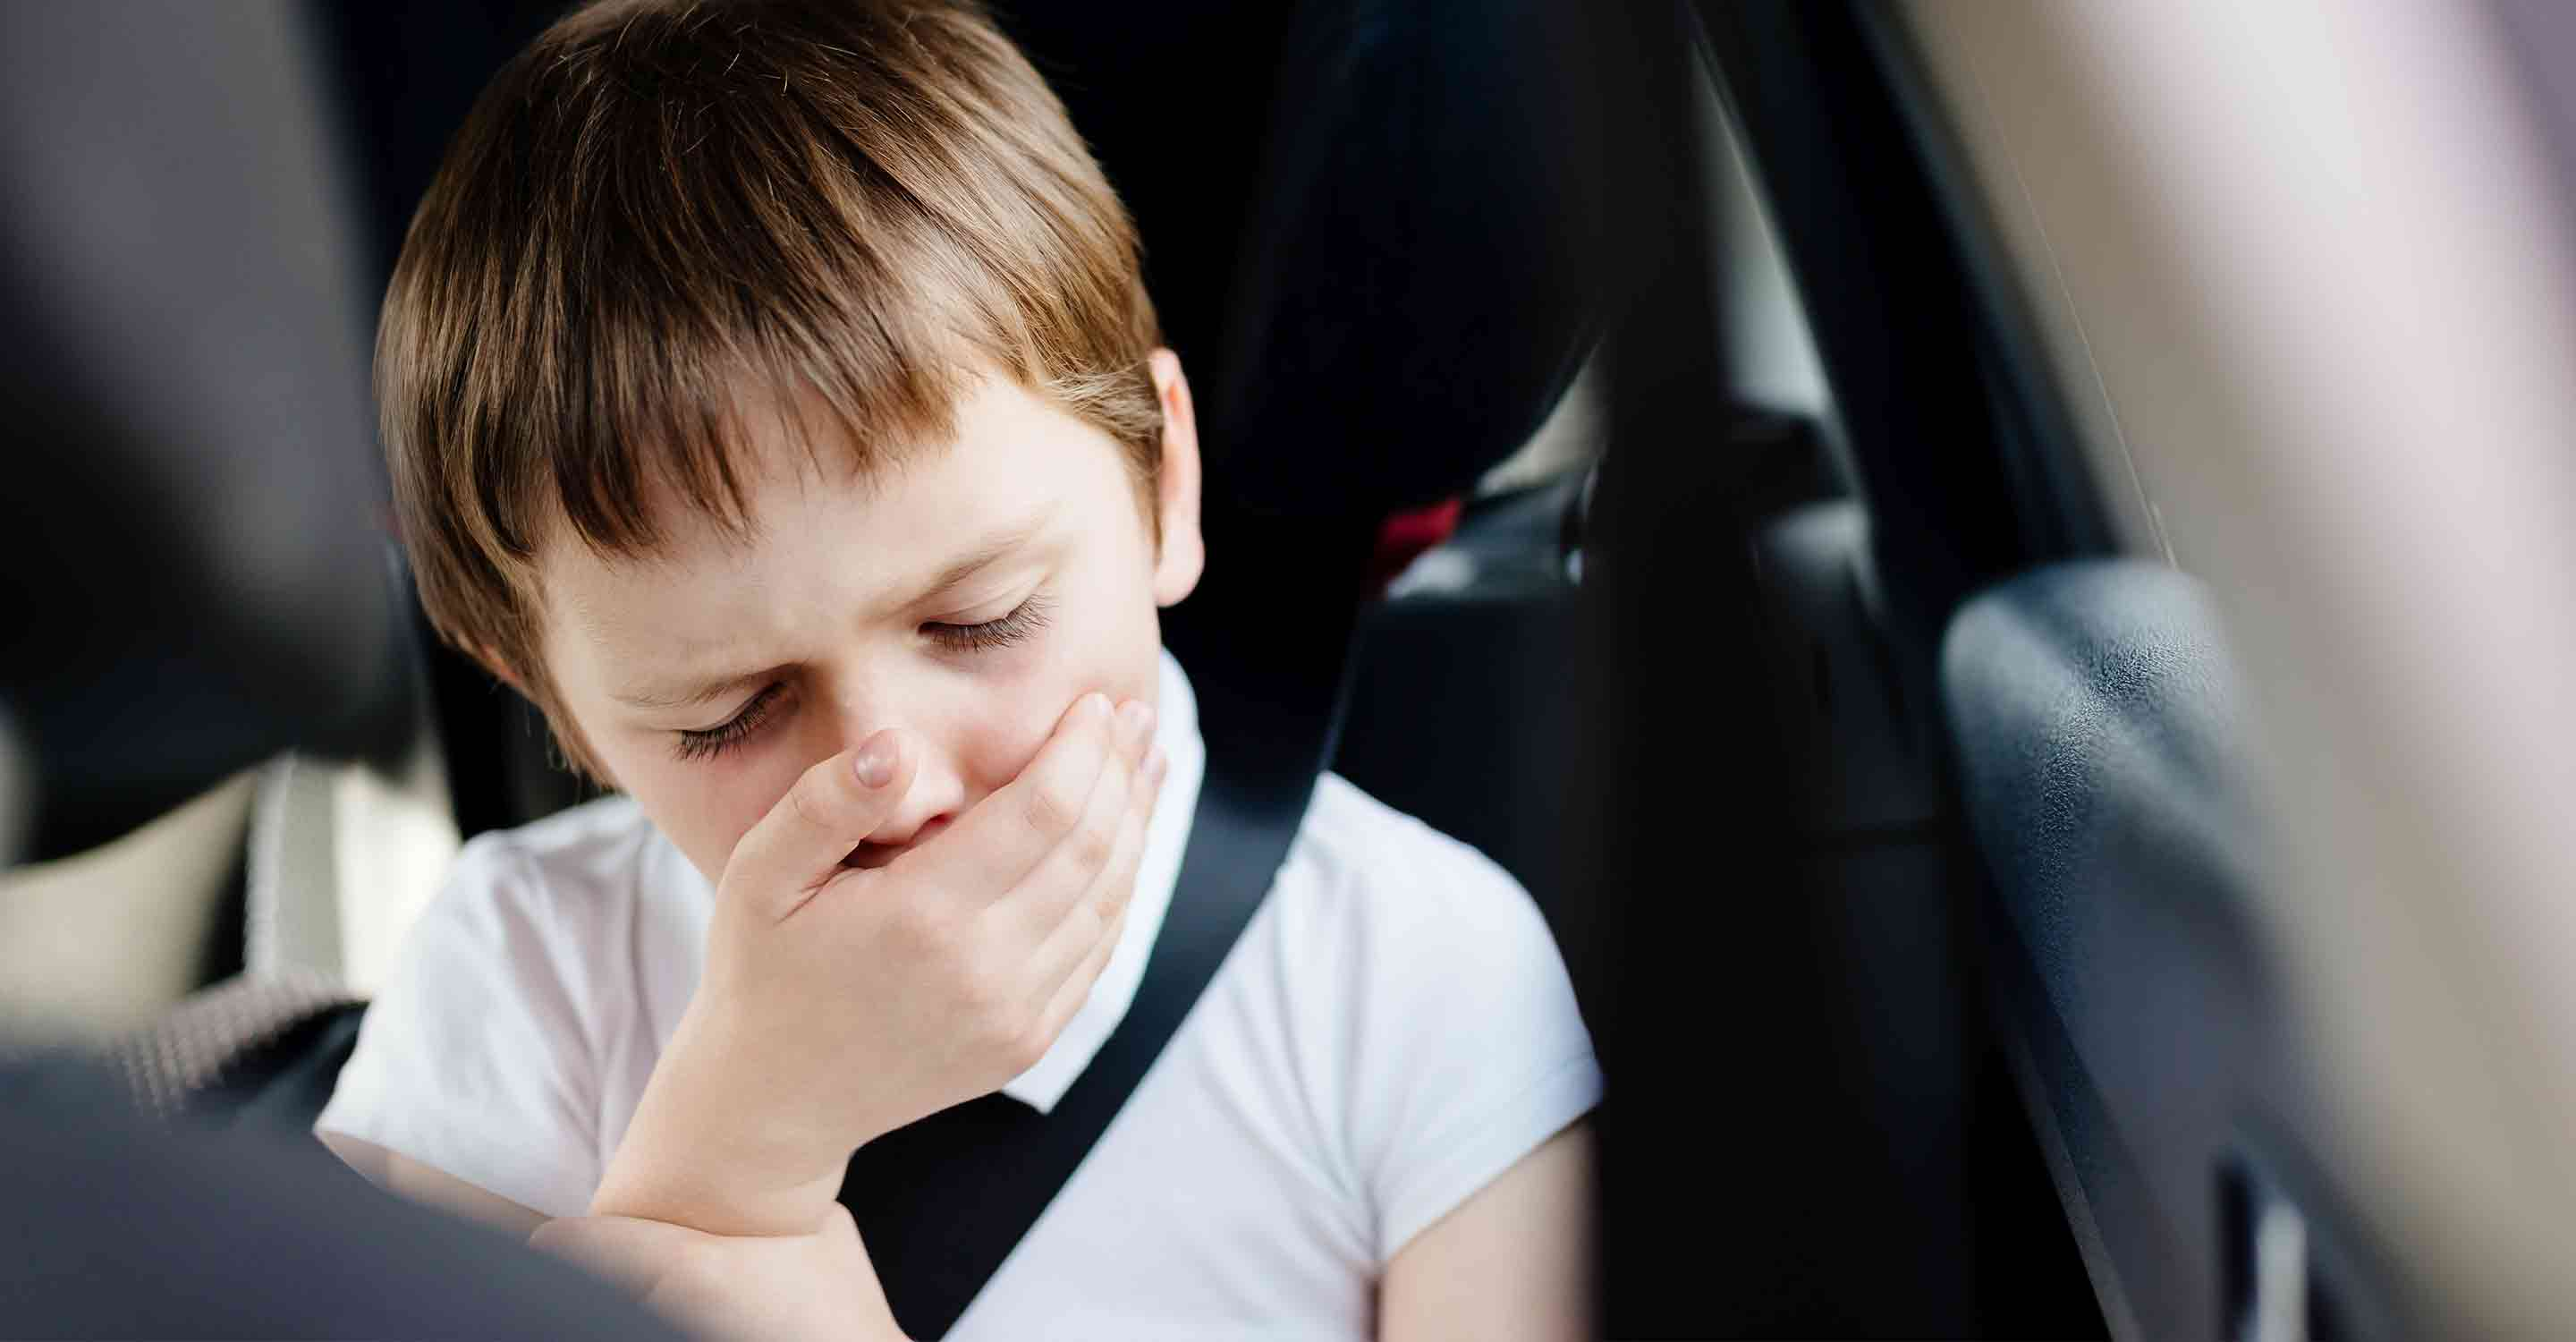 Kid coughing in the back seat of a car